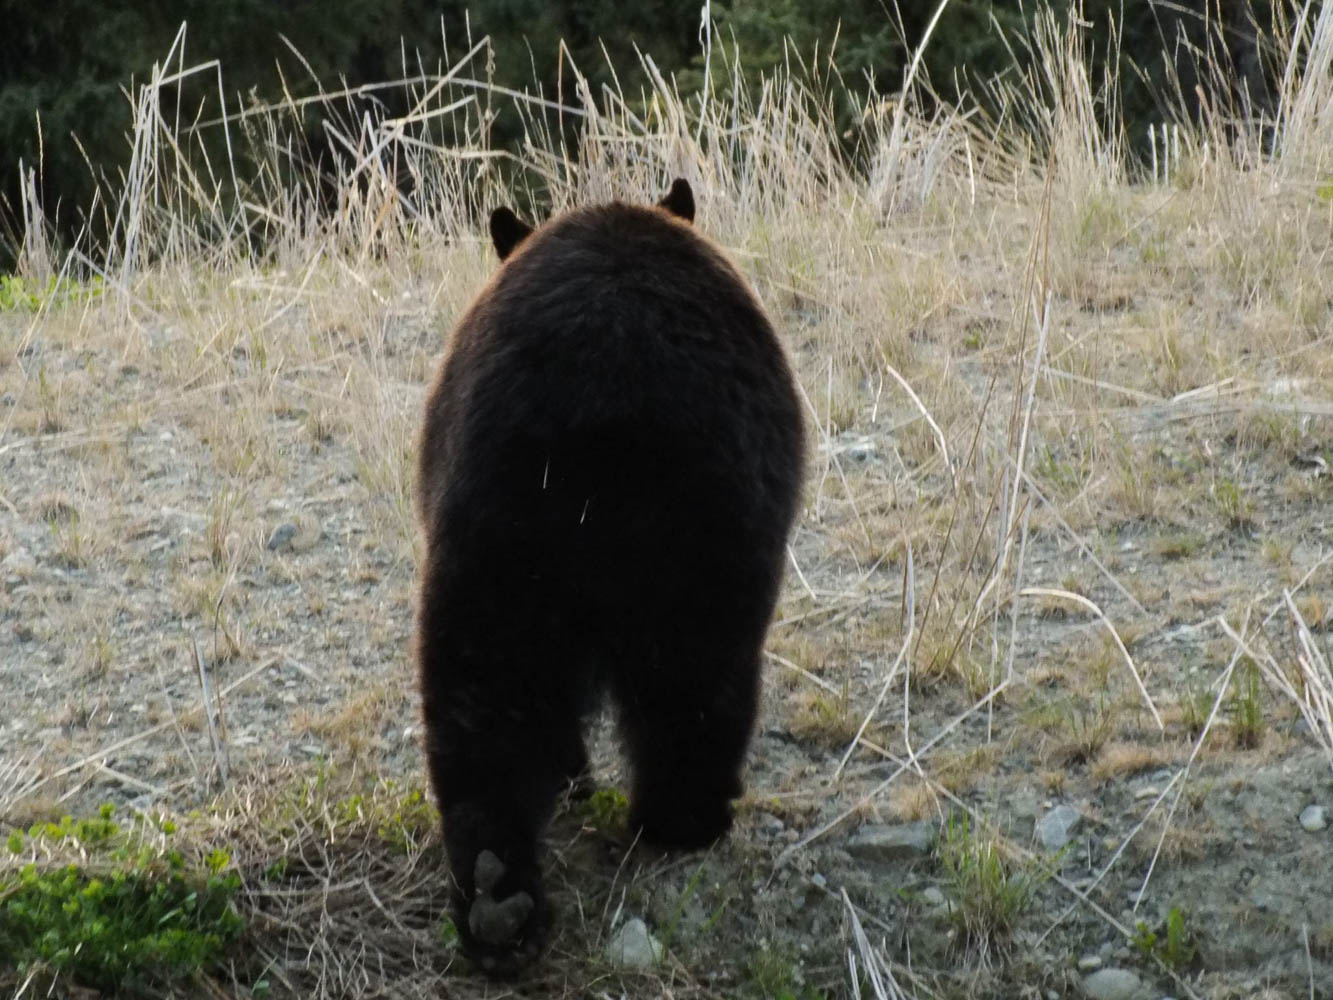 This bear had a recent encounter with a porcupine and walked away with quills in its behind (Ronnie Young, 2016).